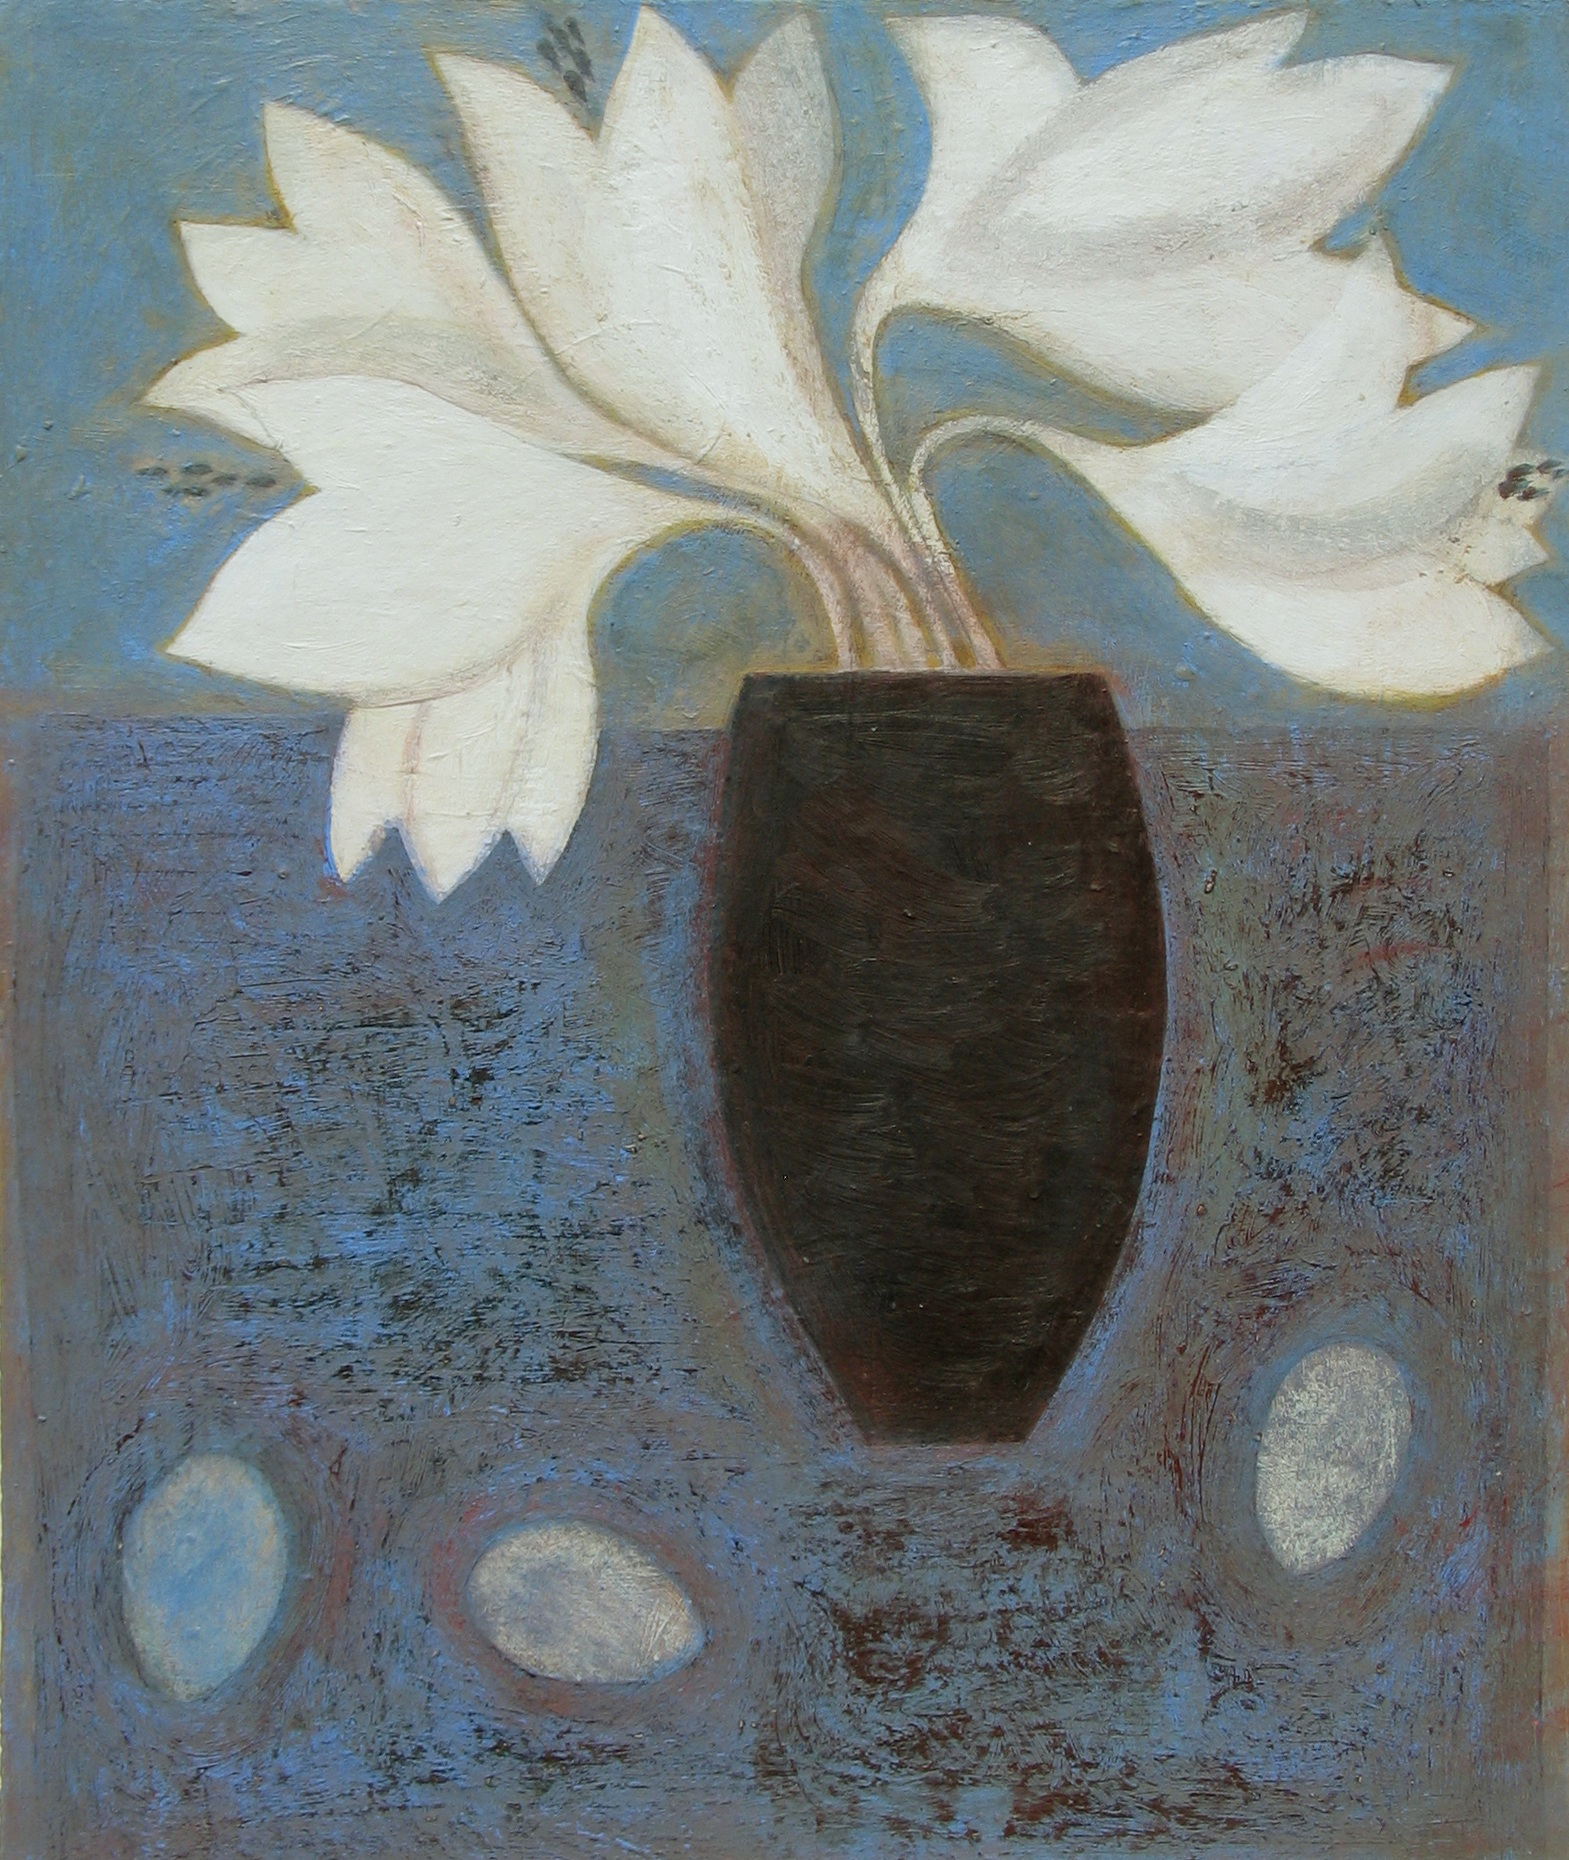 Lilies with Eggs, 54cm x 45.5cm, 2011